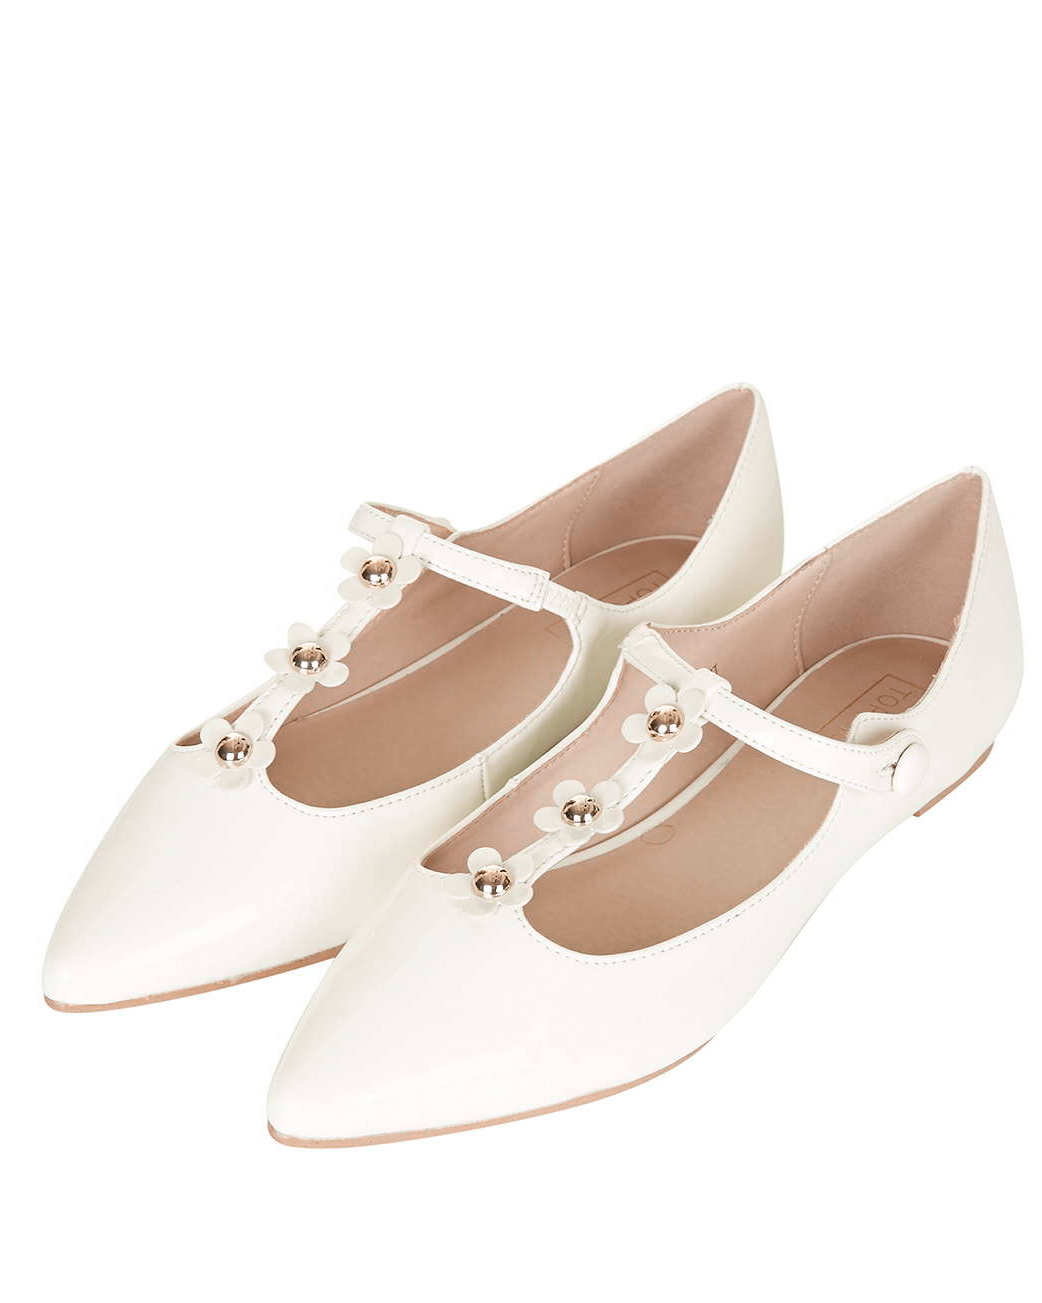 50 Best Shoes For A Bride To Wear To A Summer Wedding Martha